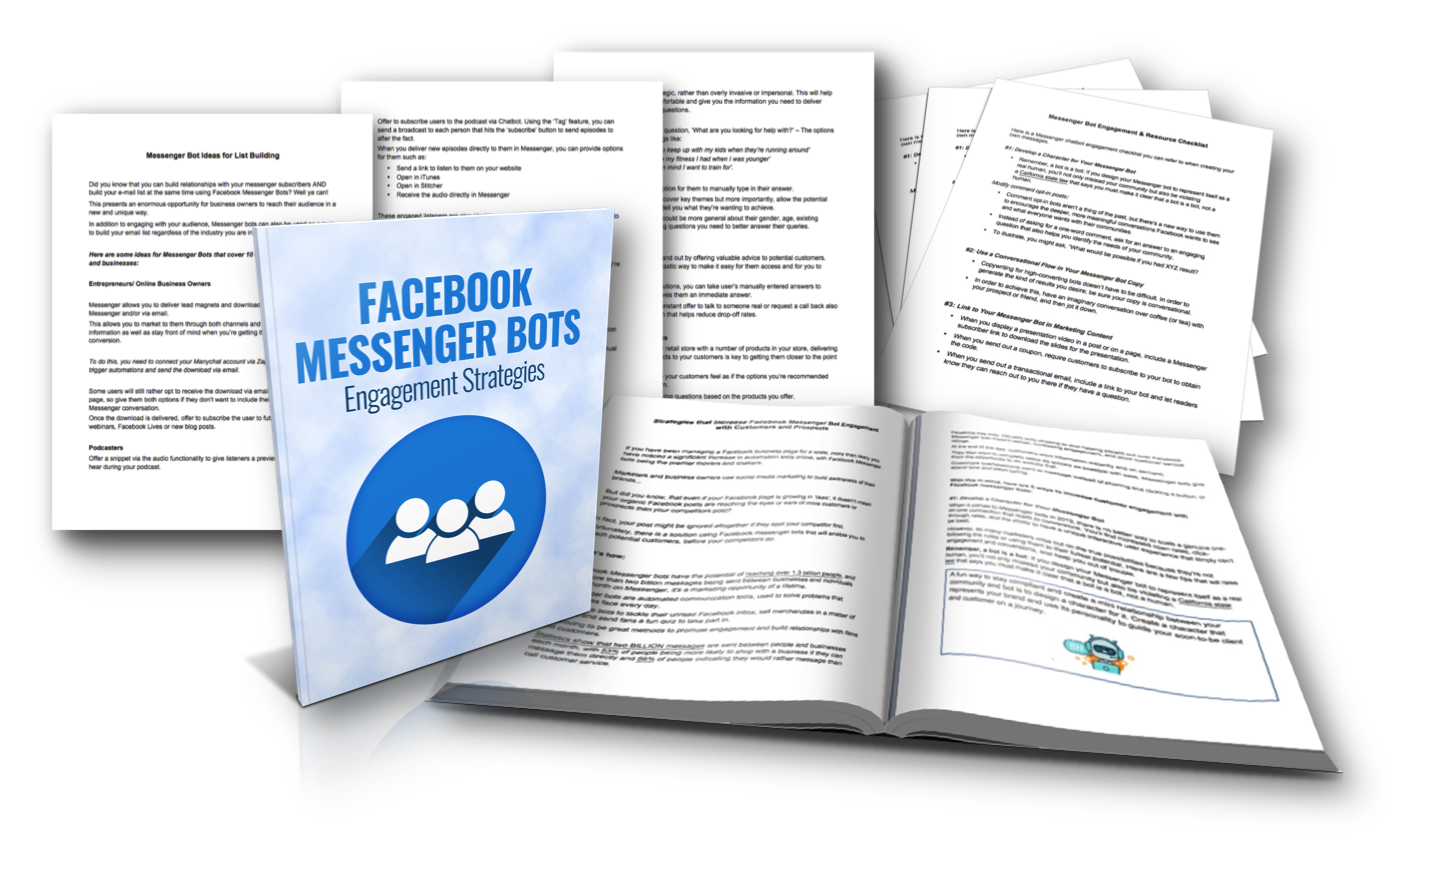 Facebook Messenger Bots Engagement Strategies